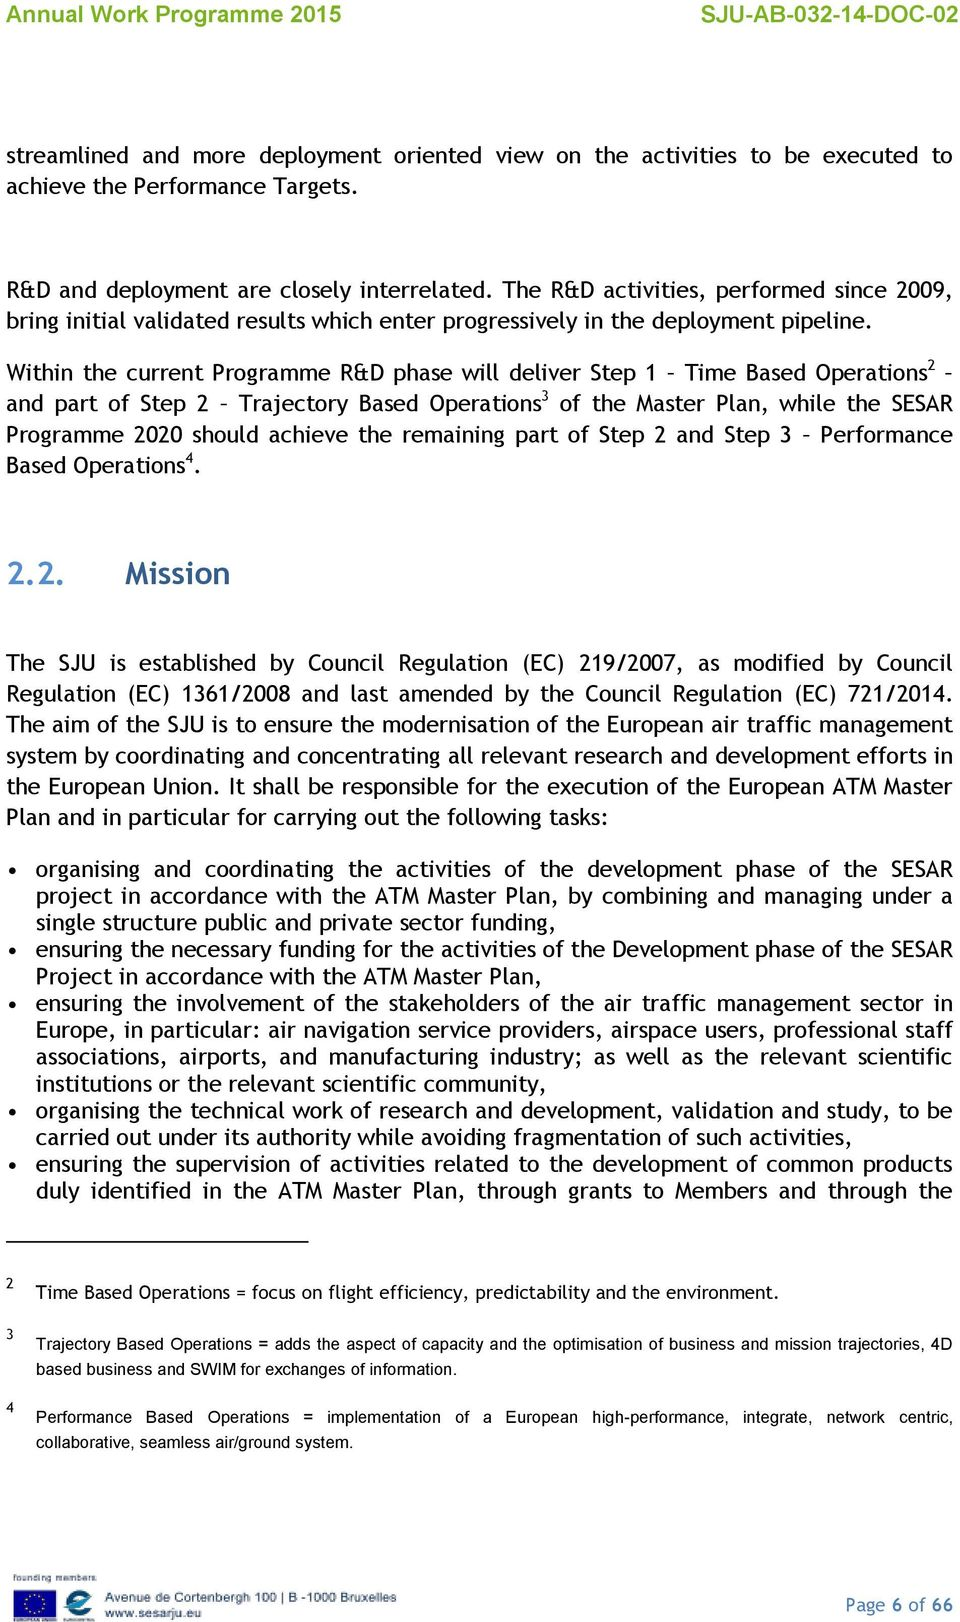 Within the current Programme R&D phase will deliver Step 1 Time Based Operations 2 and part of Step 2 Trajectory Based Operations 3 of the Master Plan, while the SESAR Programme 2020 should achieve